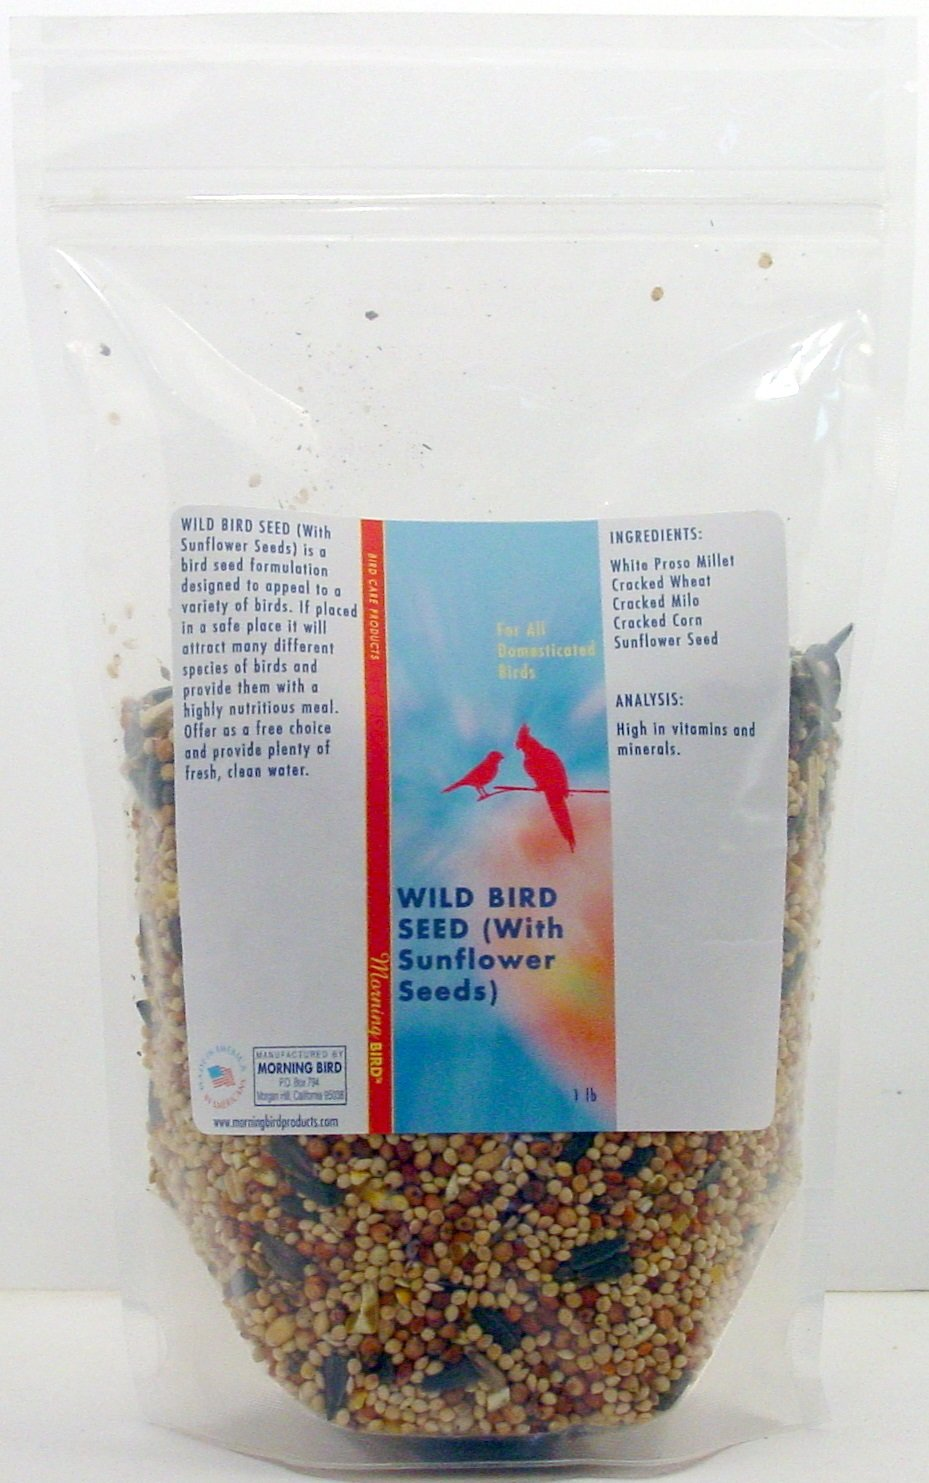 Wild Bird Seed (with Sunflower Seeds) (20 lb) Morning Bird Inc. MB488